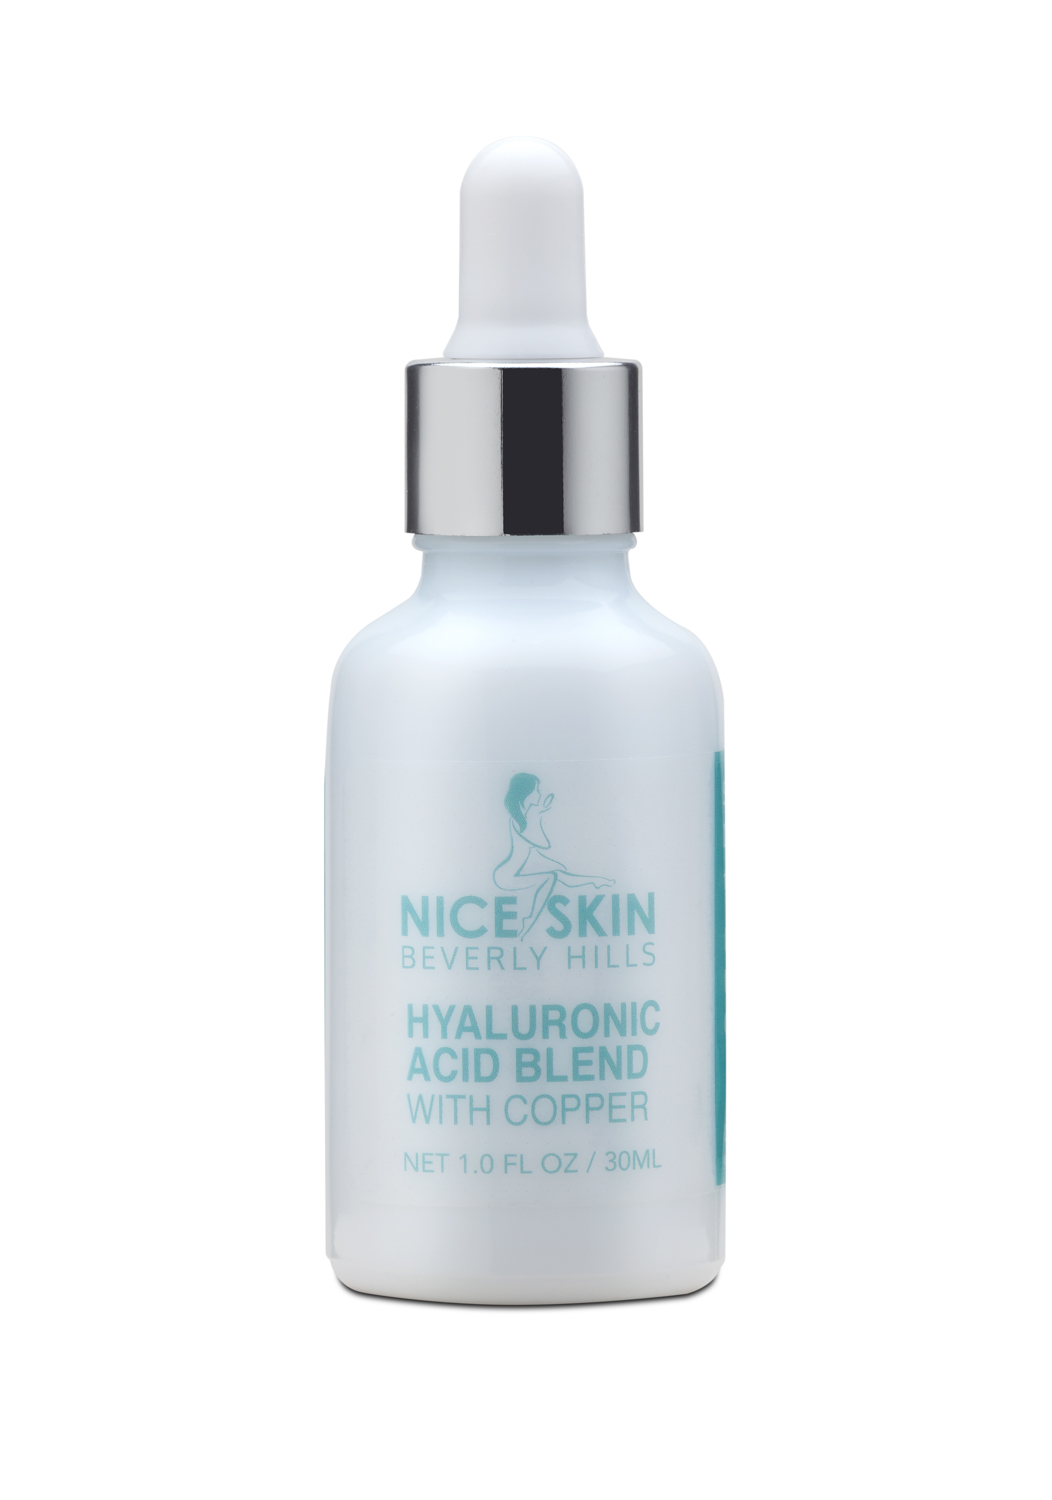 Hyaluronic Acid Blend With Copper